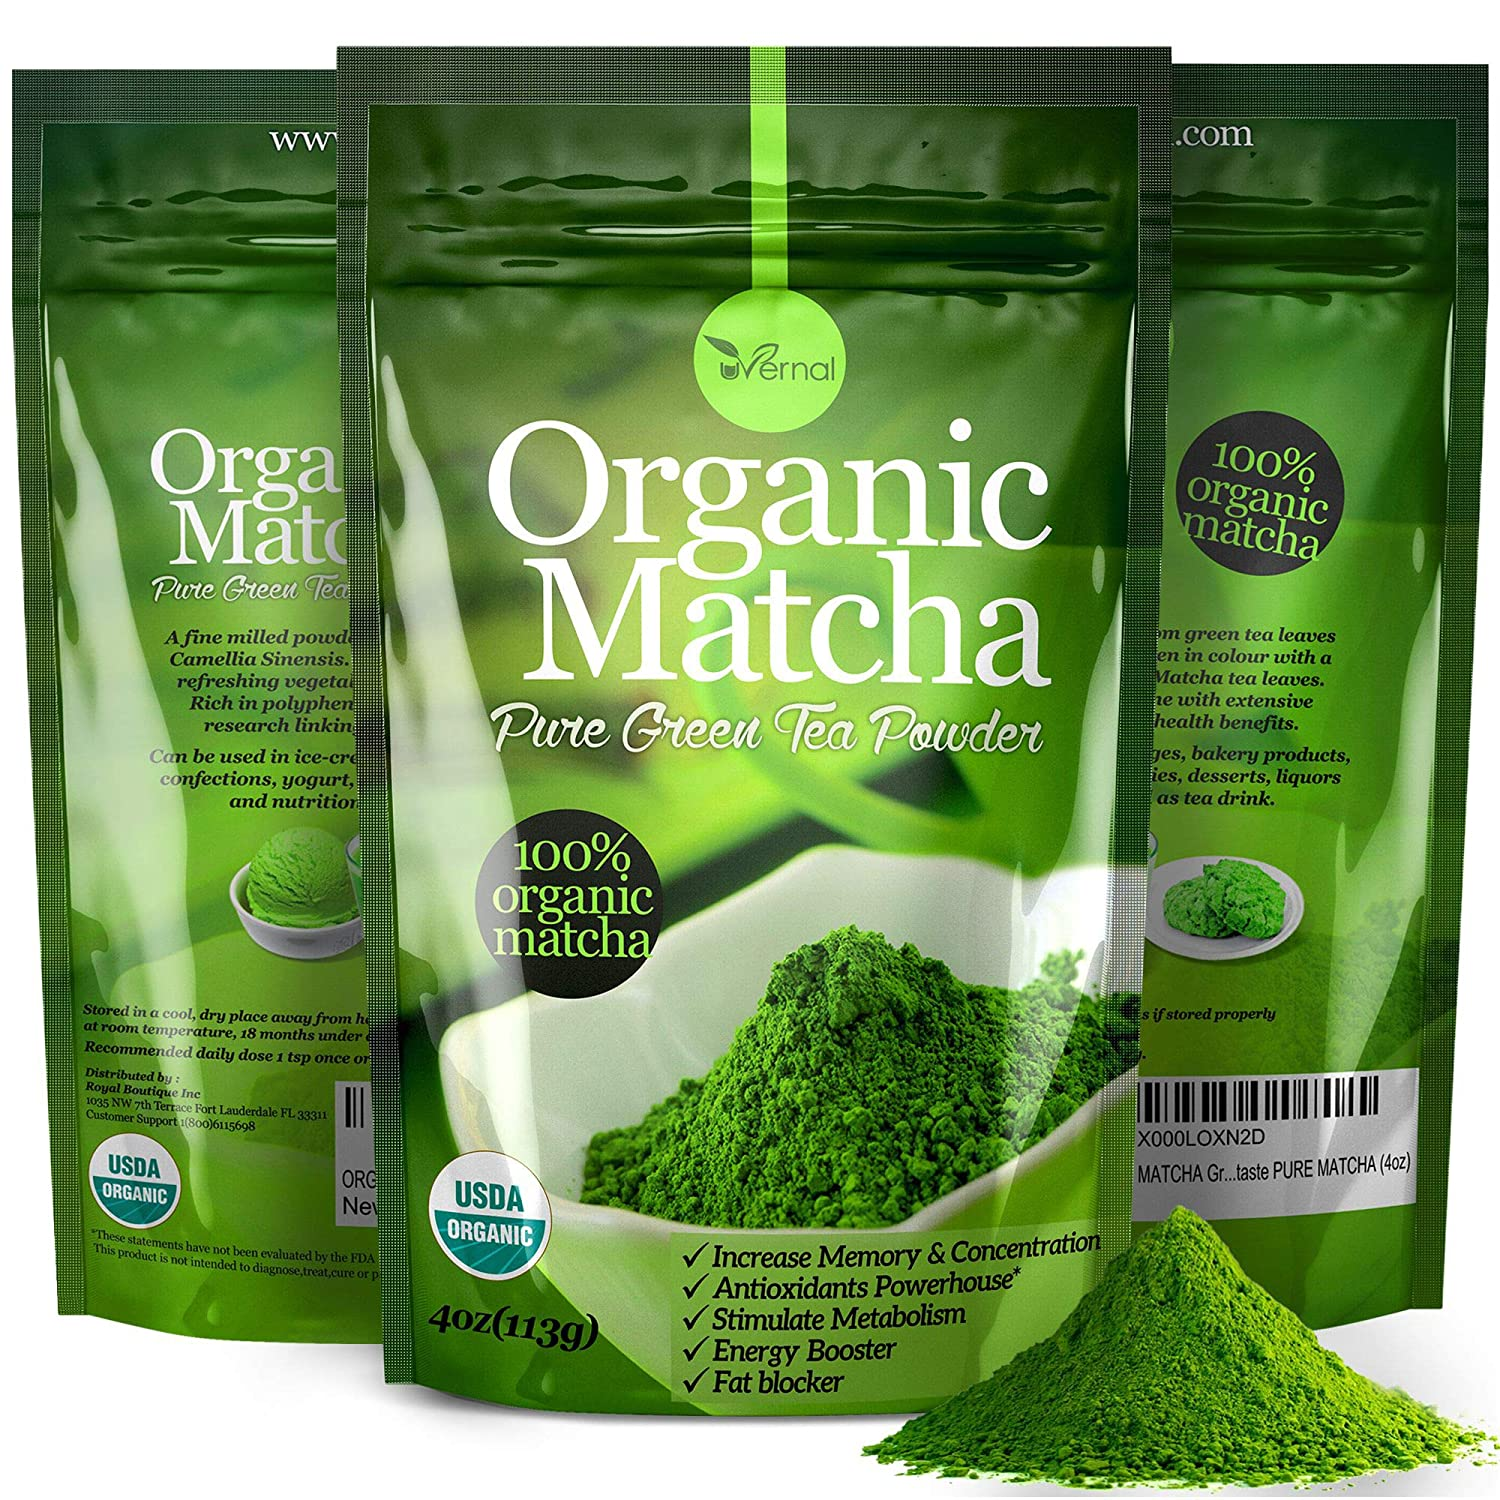 uVernal Organic Matcha Green Tea Powder- 100% Pure Matcha for Smoothies and  Baking - 4oz by uVernal: Amazon.com: Grocery & Gourmet Food